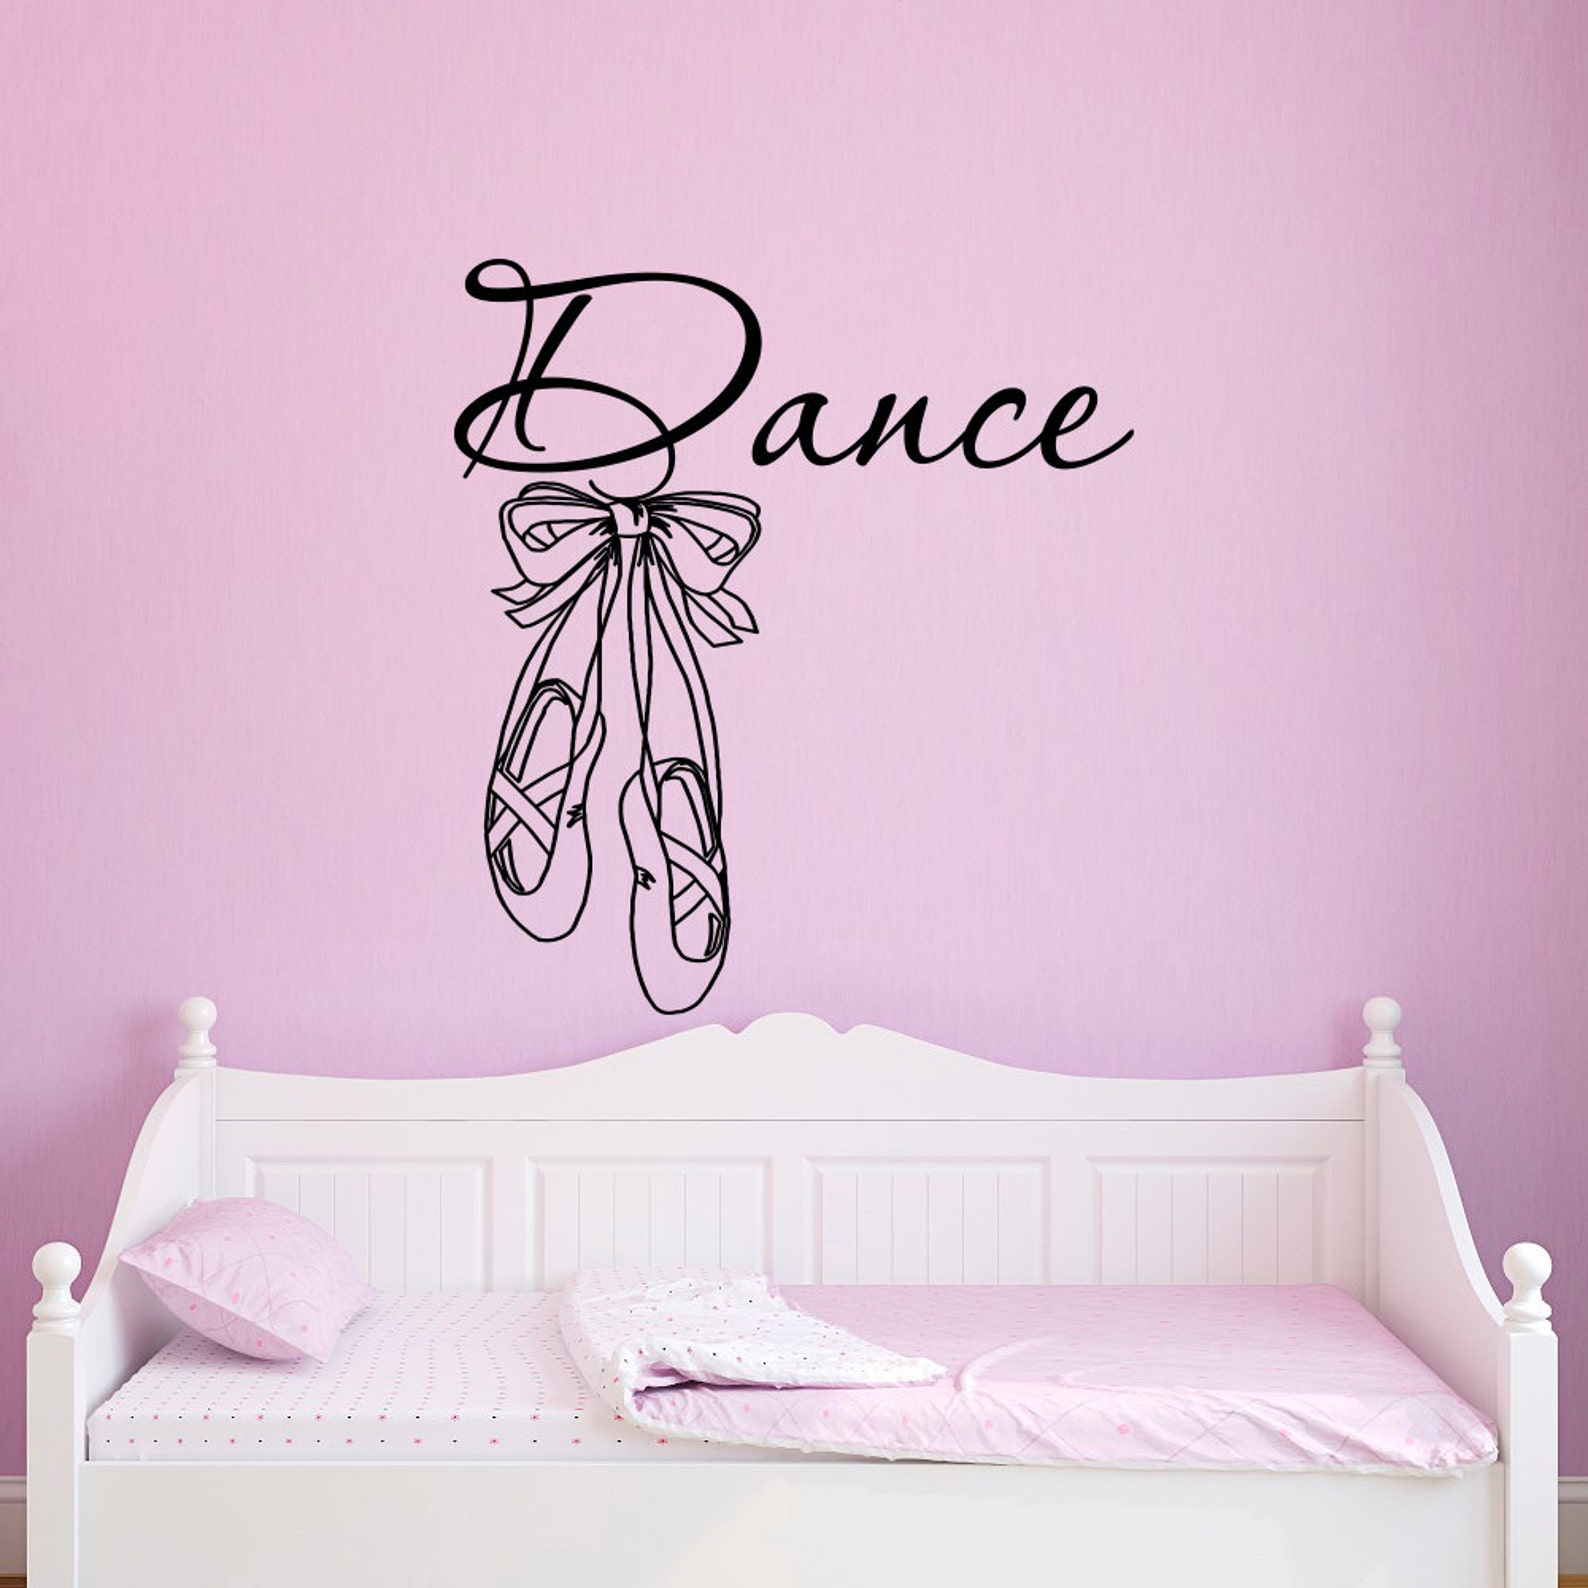 dance wall decals stickers ballet shoes slippers ballerina ballet wall decal girls bedroom nursery kids room ballet wall art hom